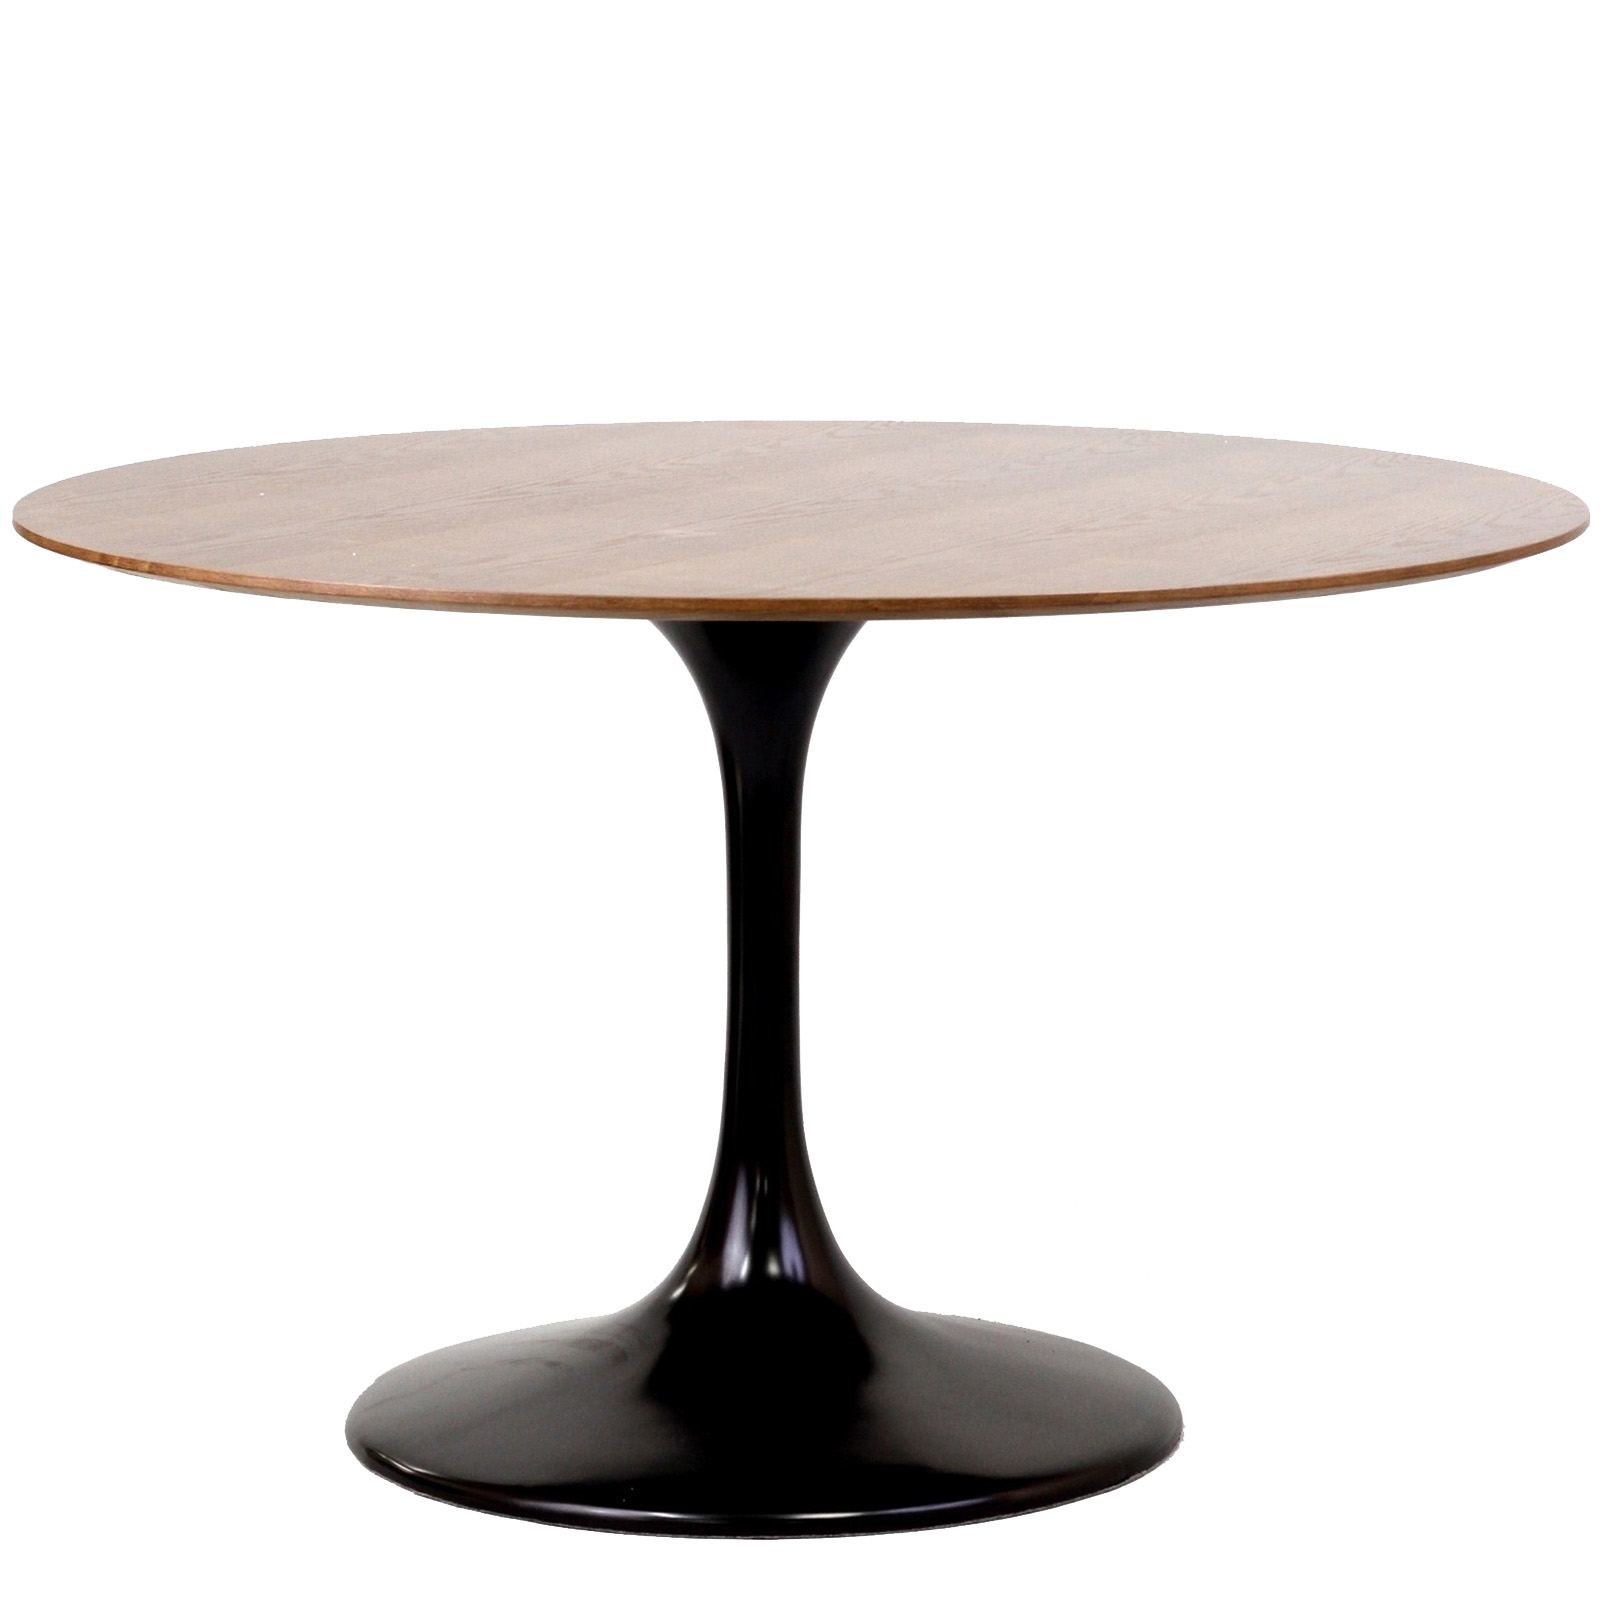 27.   Pheobe Dining Table